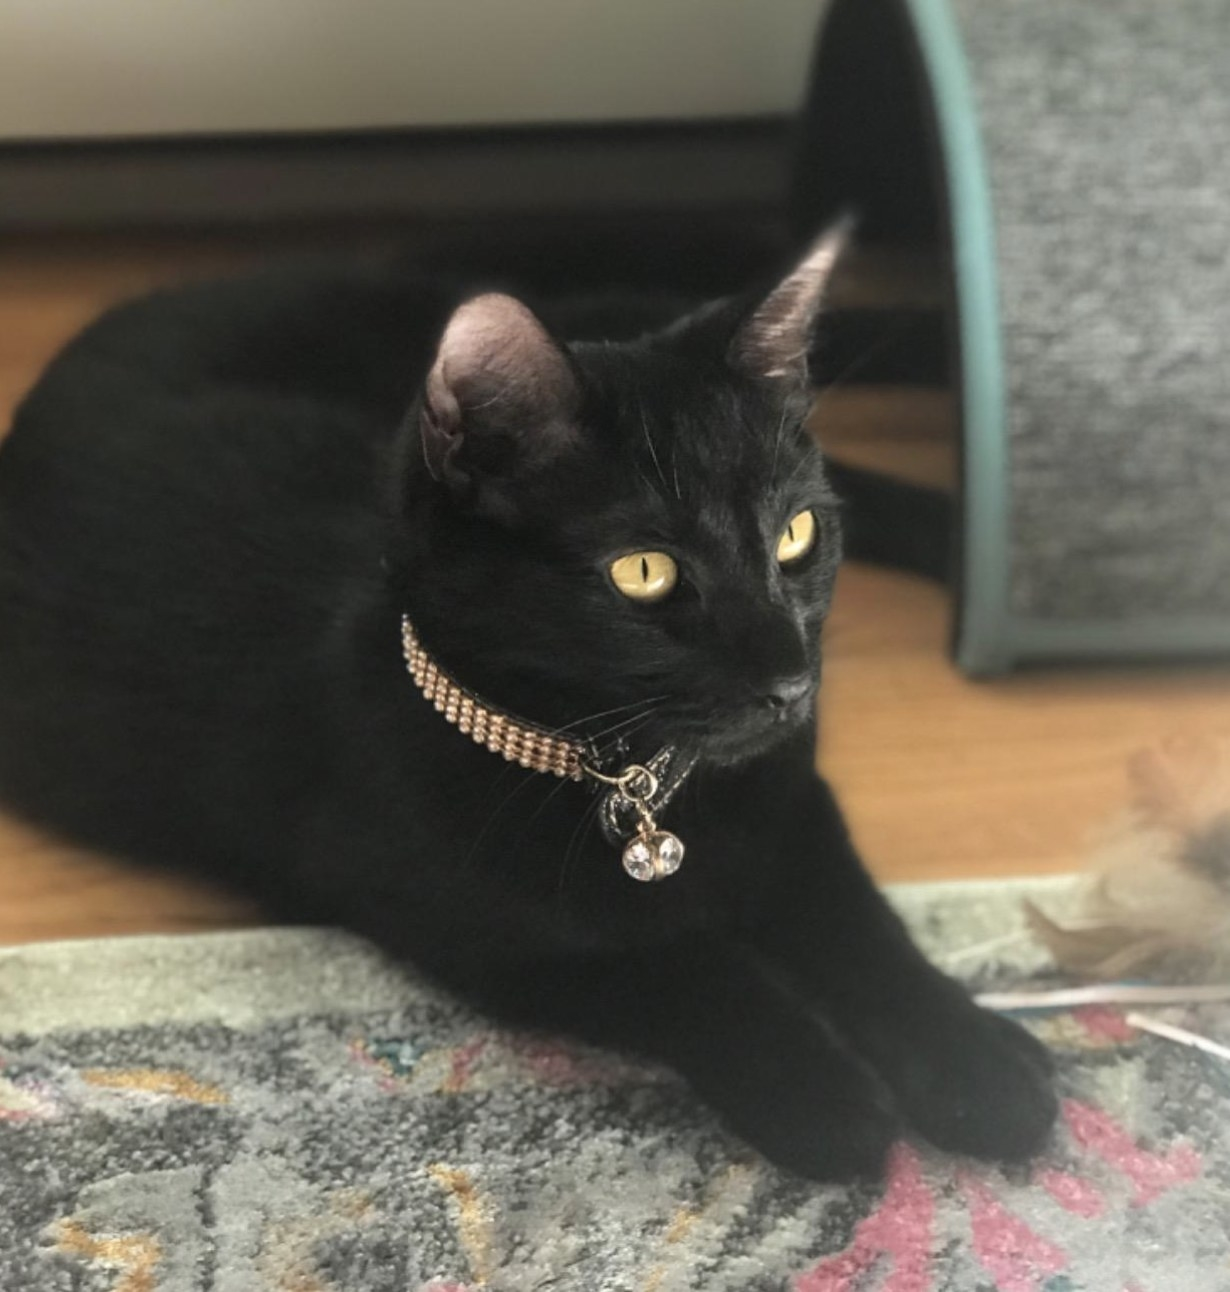 A black cat sitting on the floor while wearing a gold collar encrusted with gold rhinestones